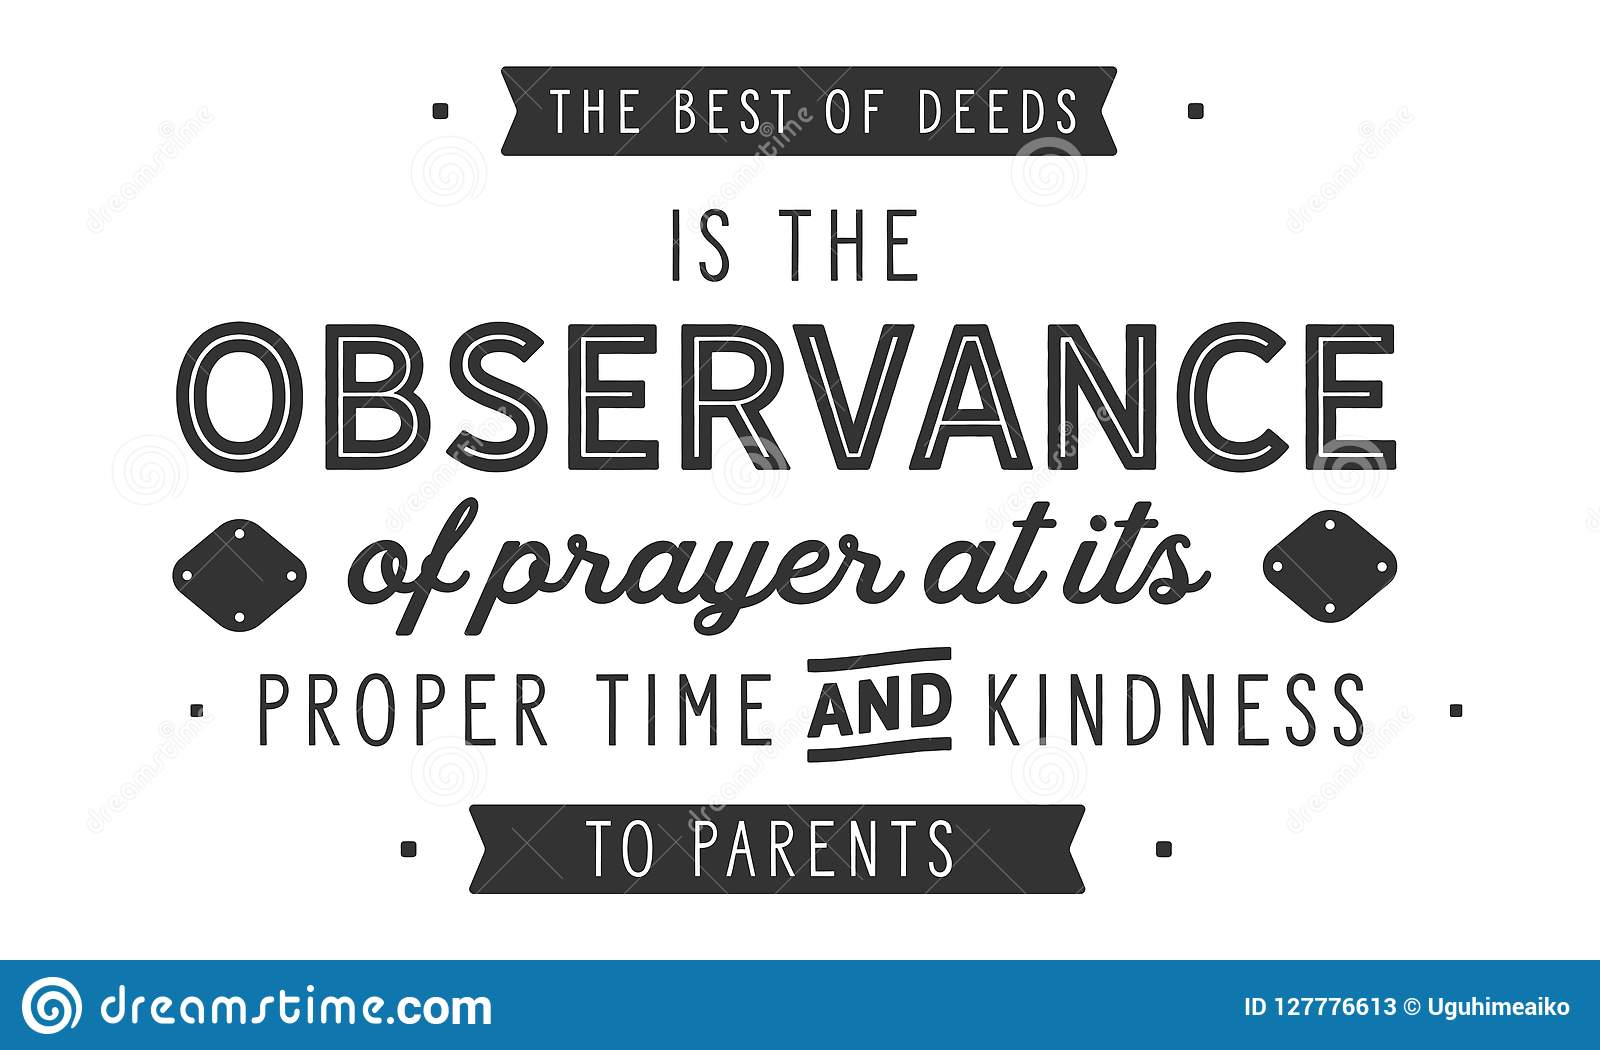 The Best Of Deeds Is The Observance Of Prayer At Its Proper